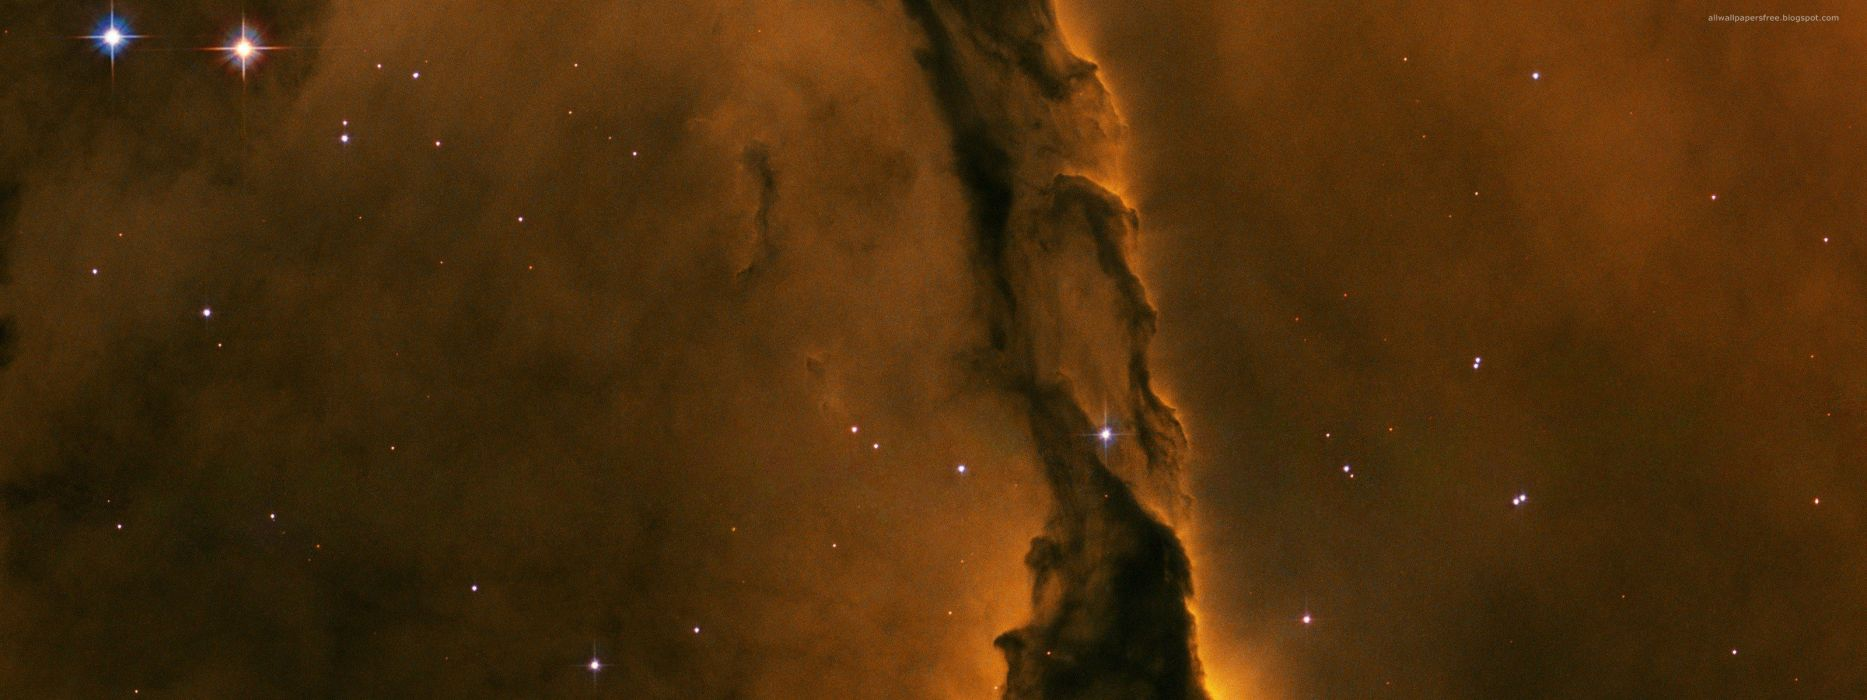 outer space Hubble wallpaper